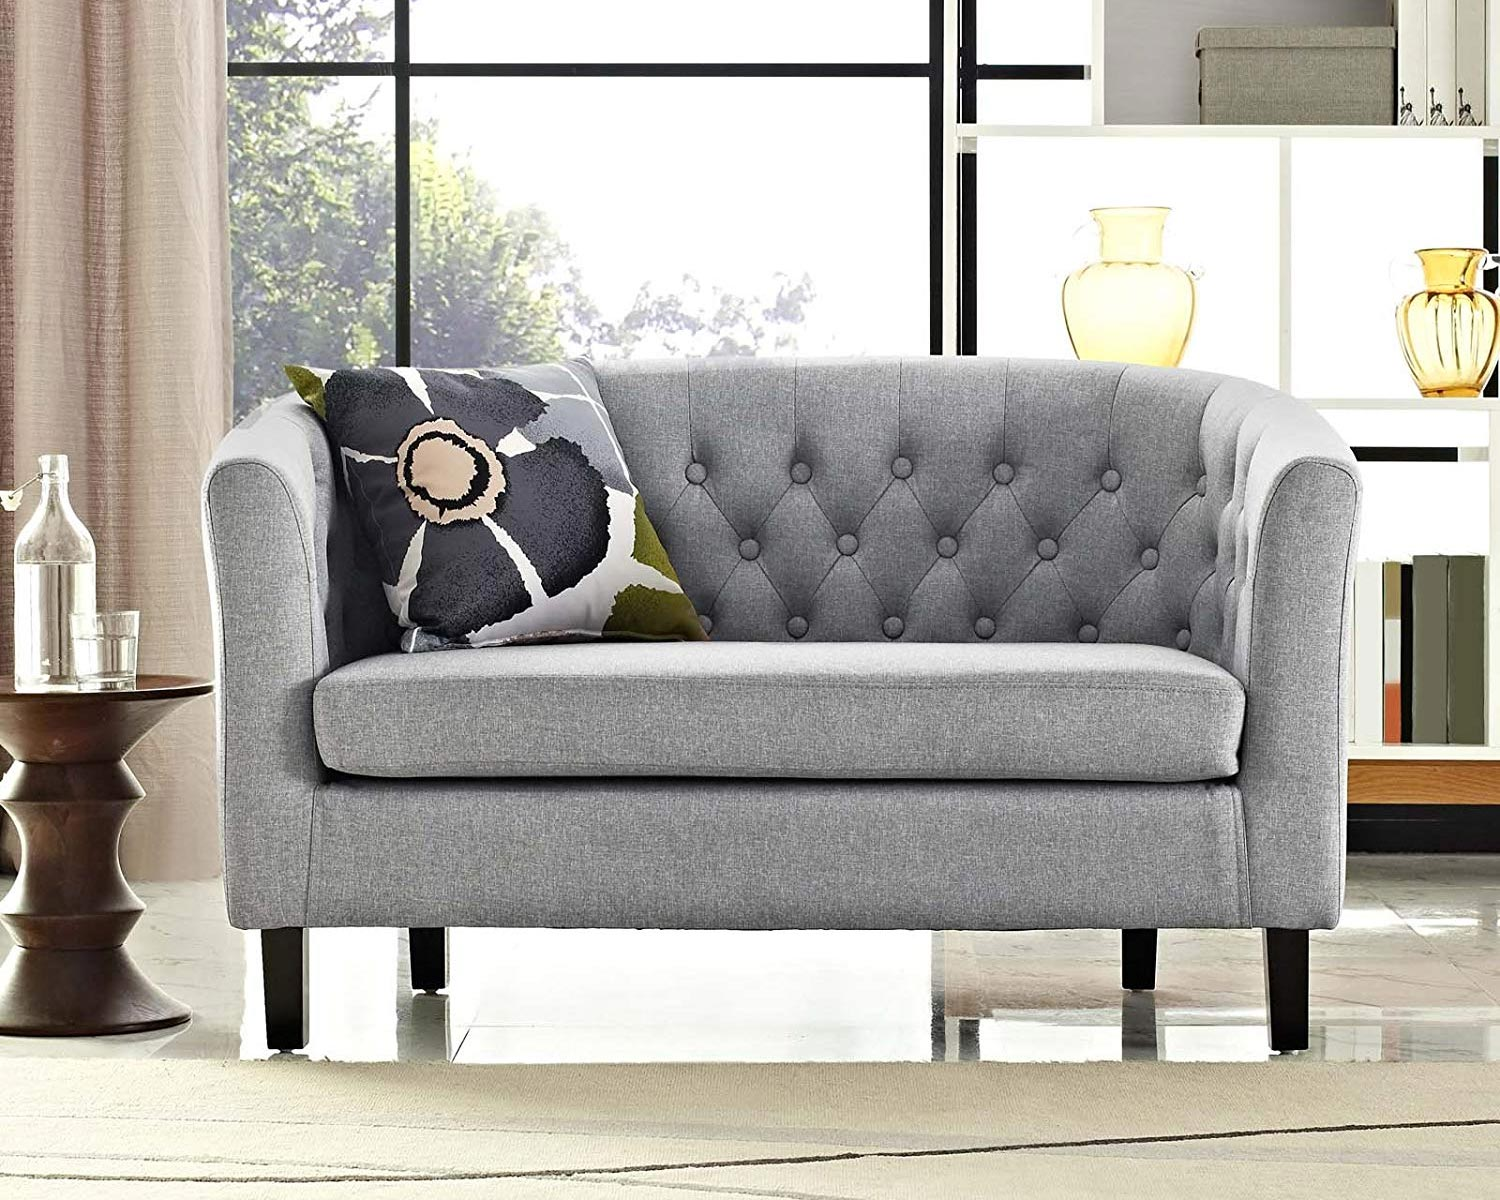 Modway Prospect Loveseat Sofa (Fabric)   Featured